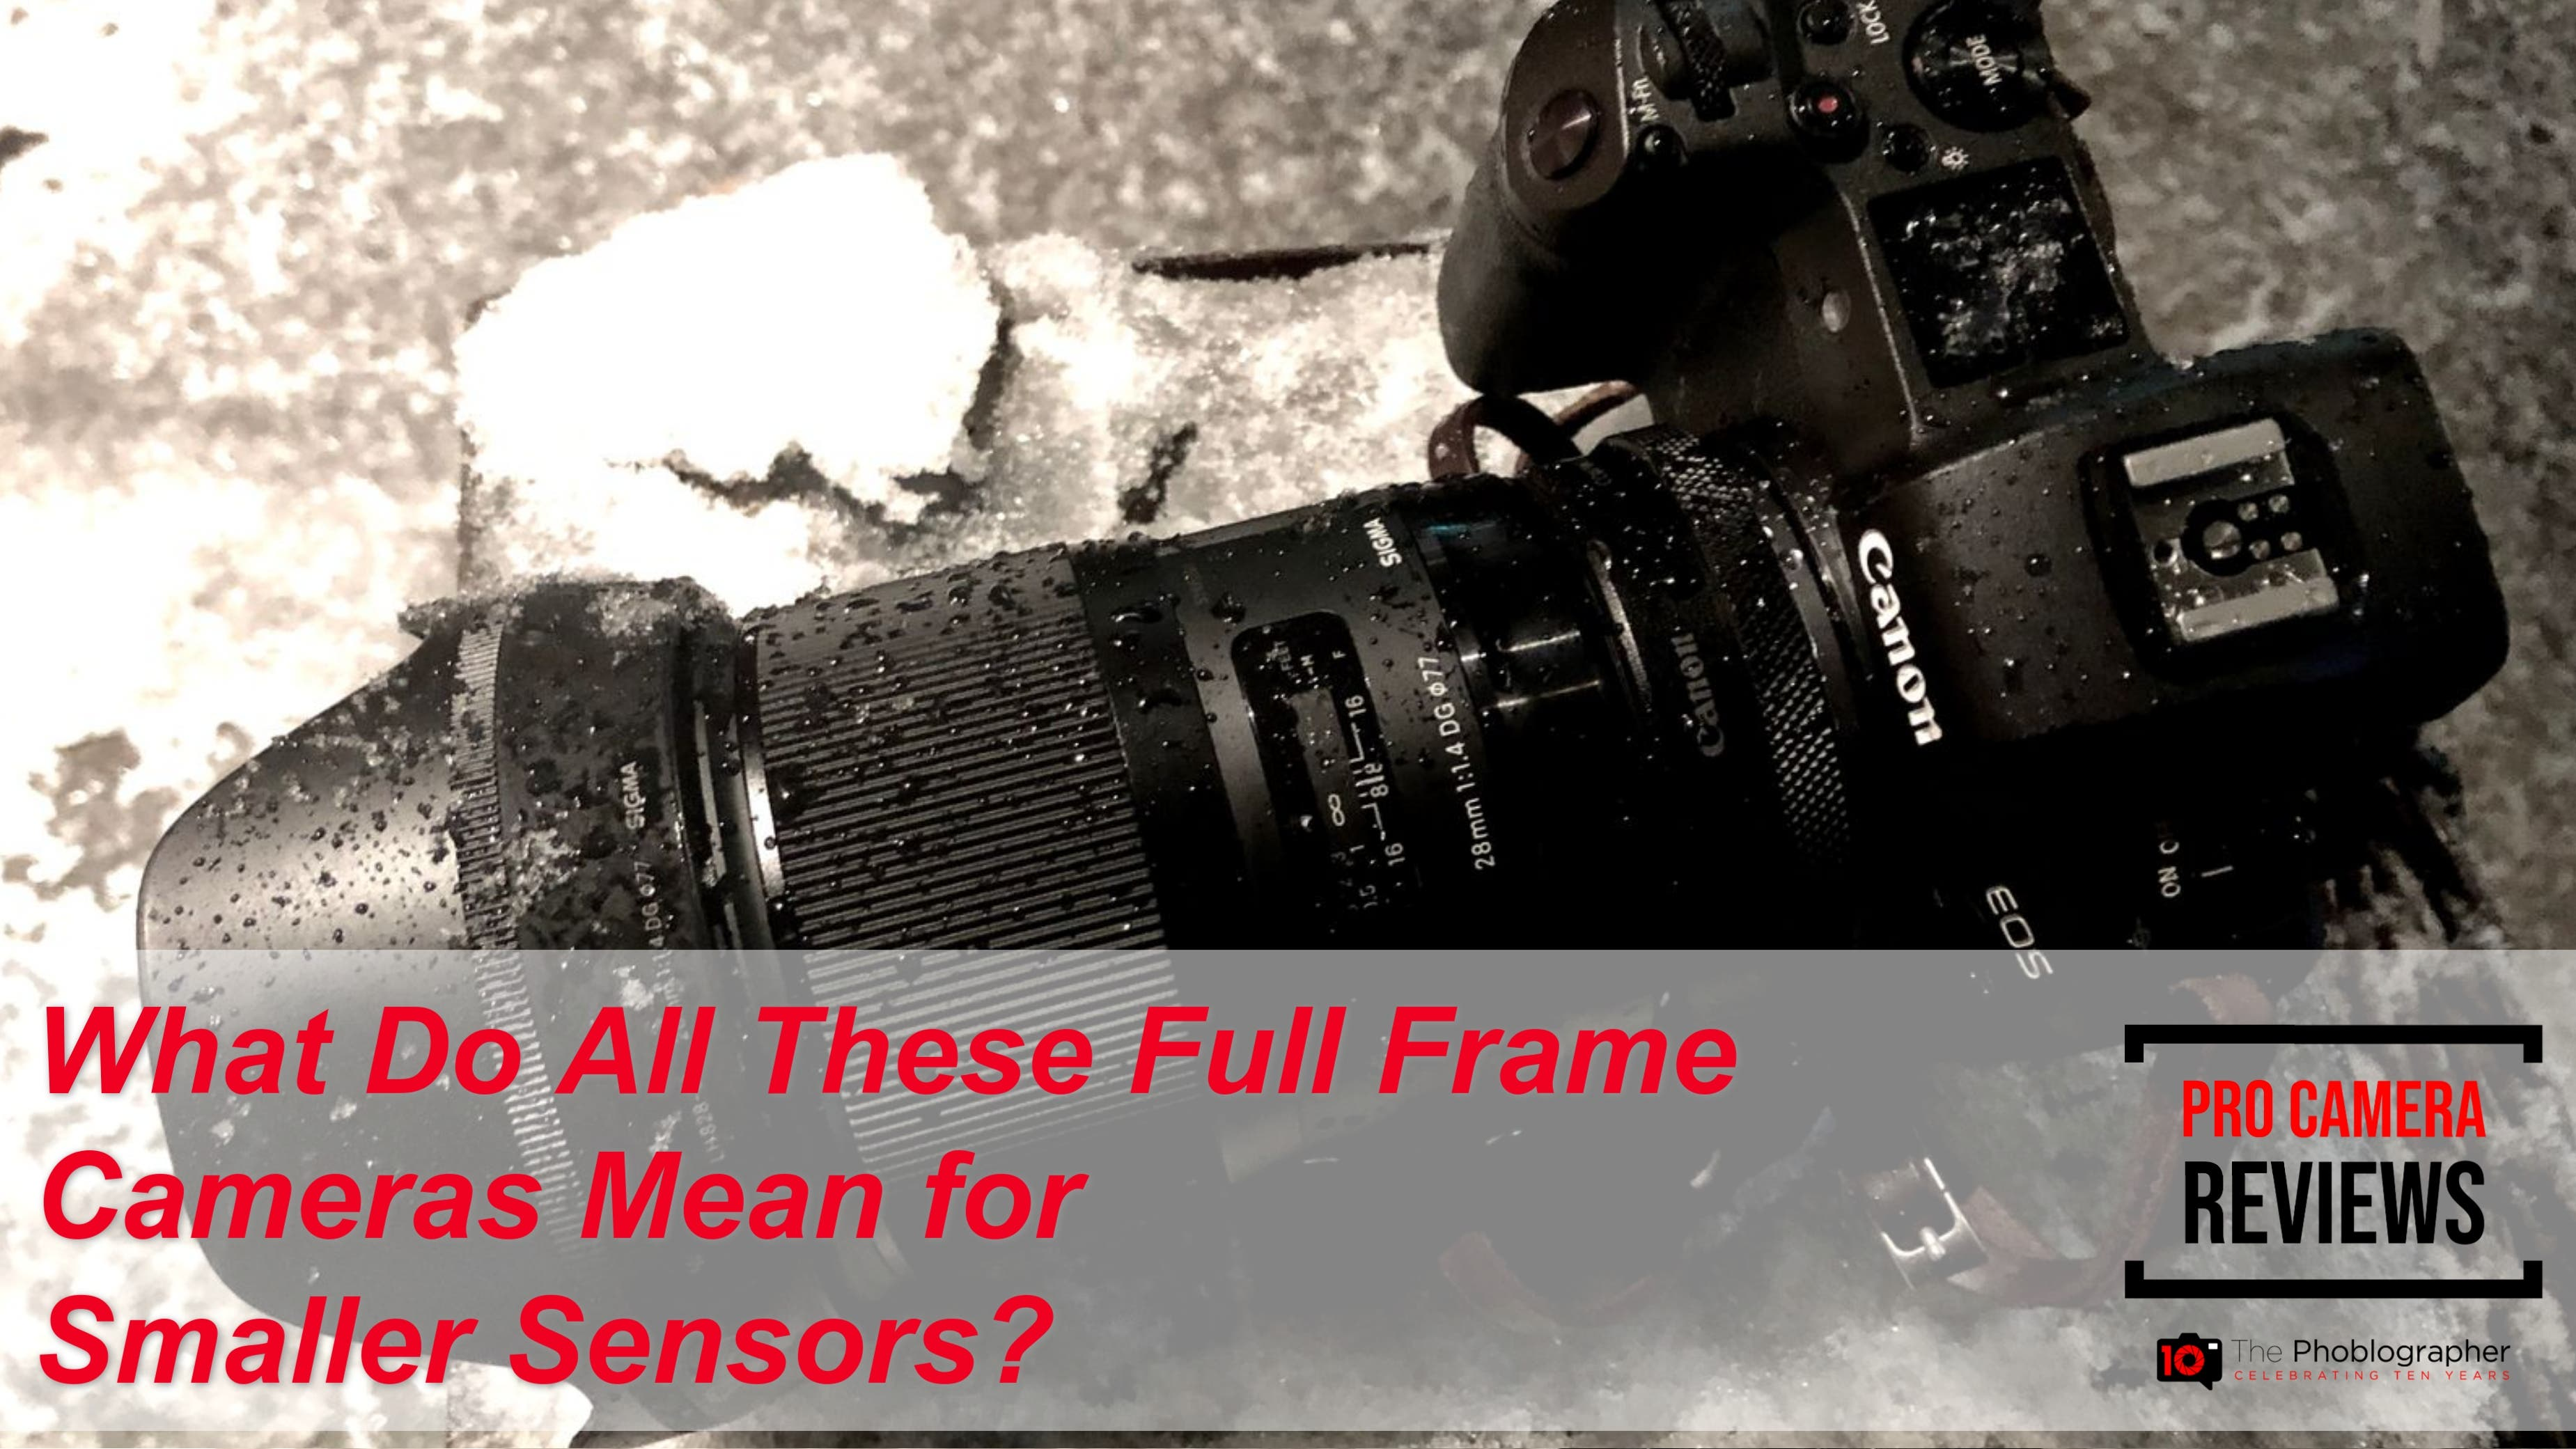 Are Sales Proving That Full Frame Is Beating Small Sensor Cameras?